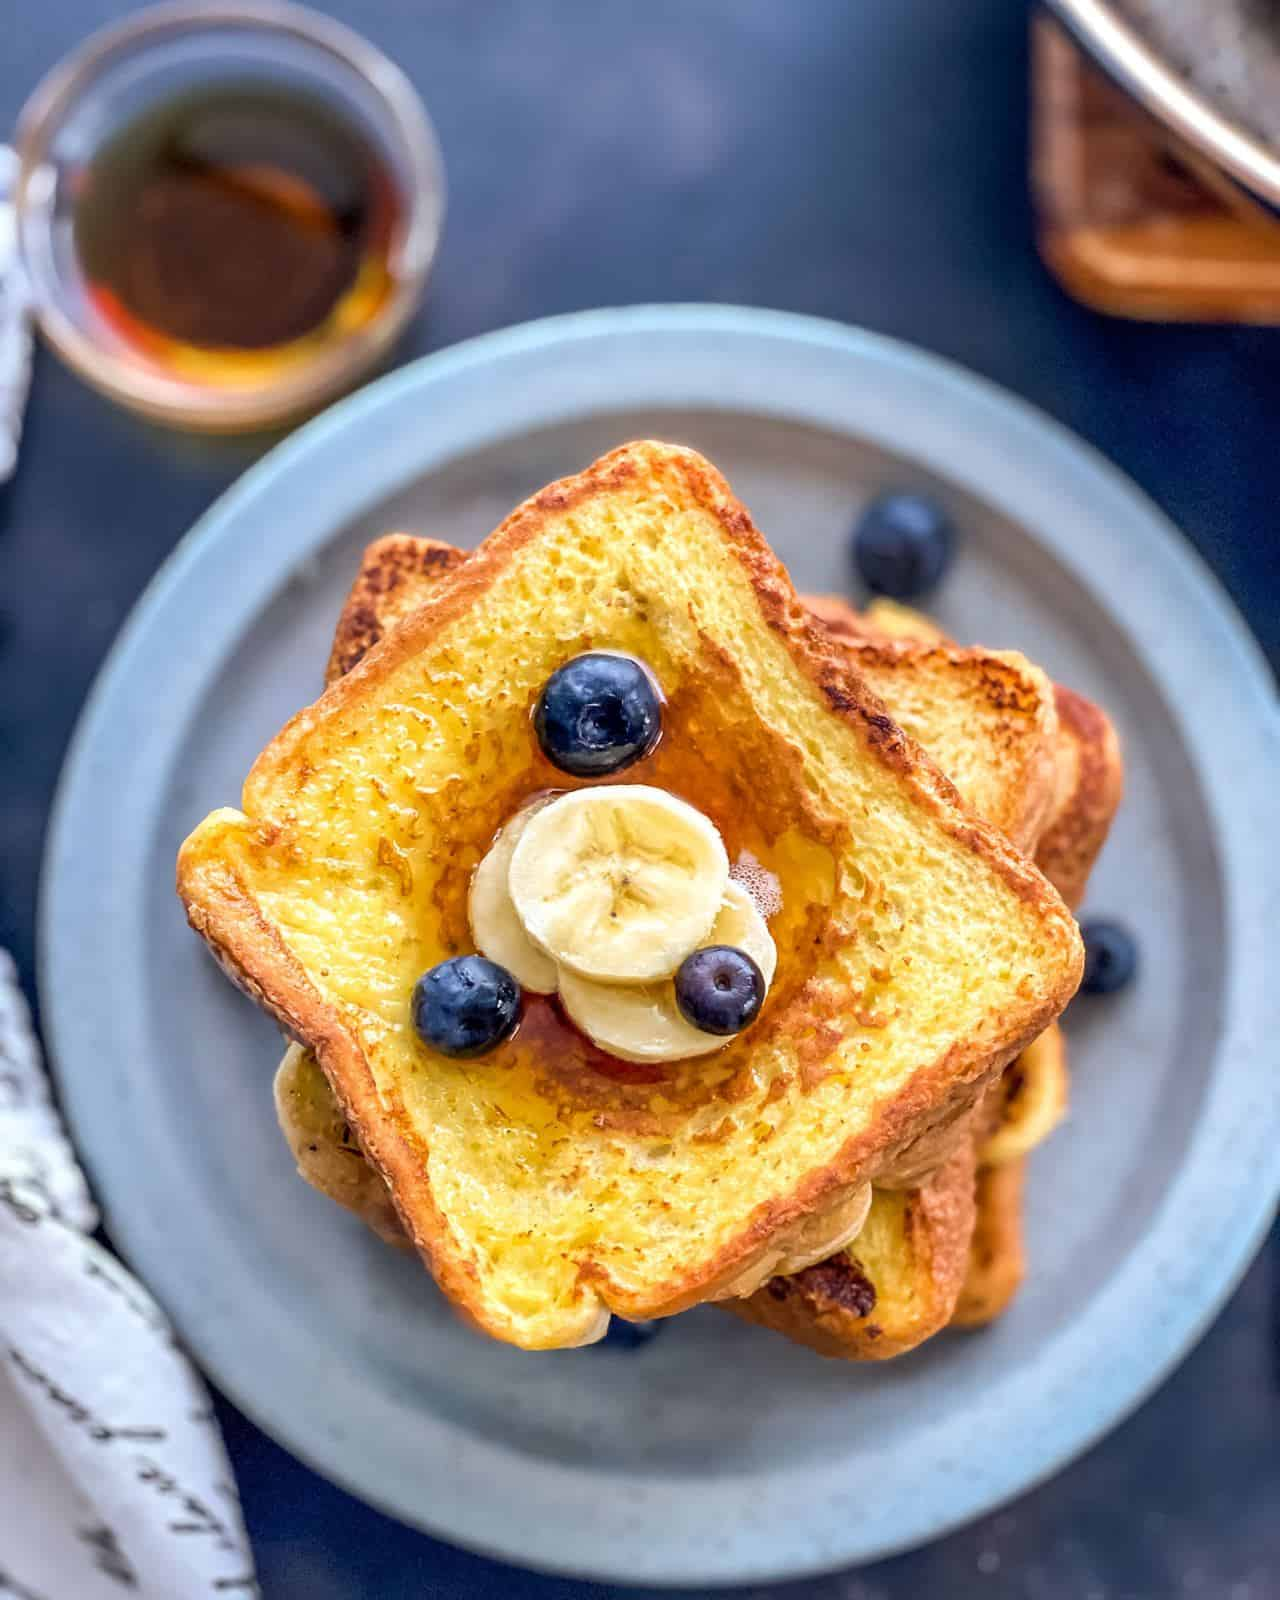 A blue plate of french toast shot from the top down with slices of banana and blueberries on top and a small bowl of syrup to the top left of the plate.